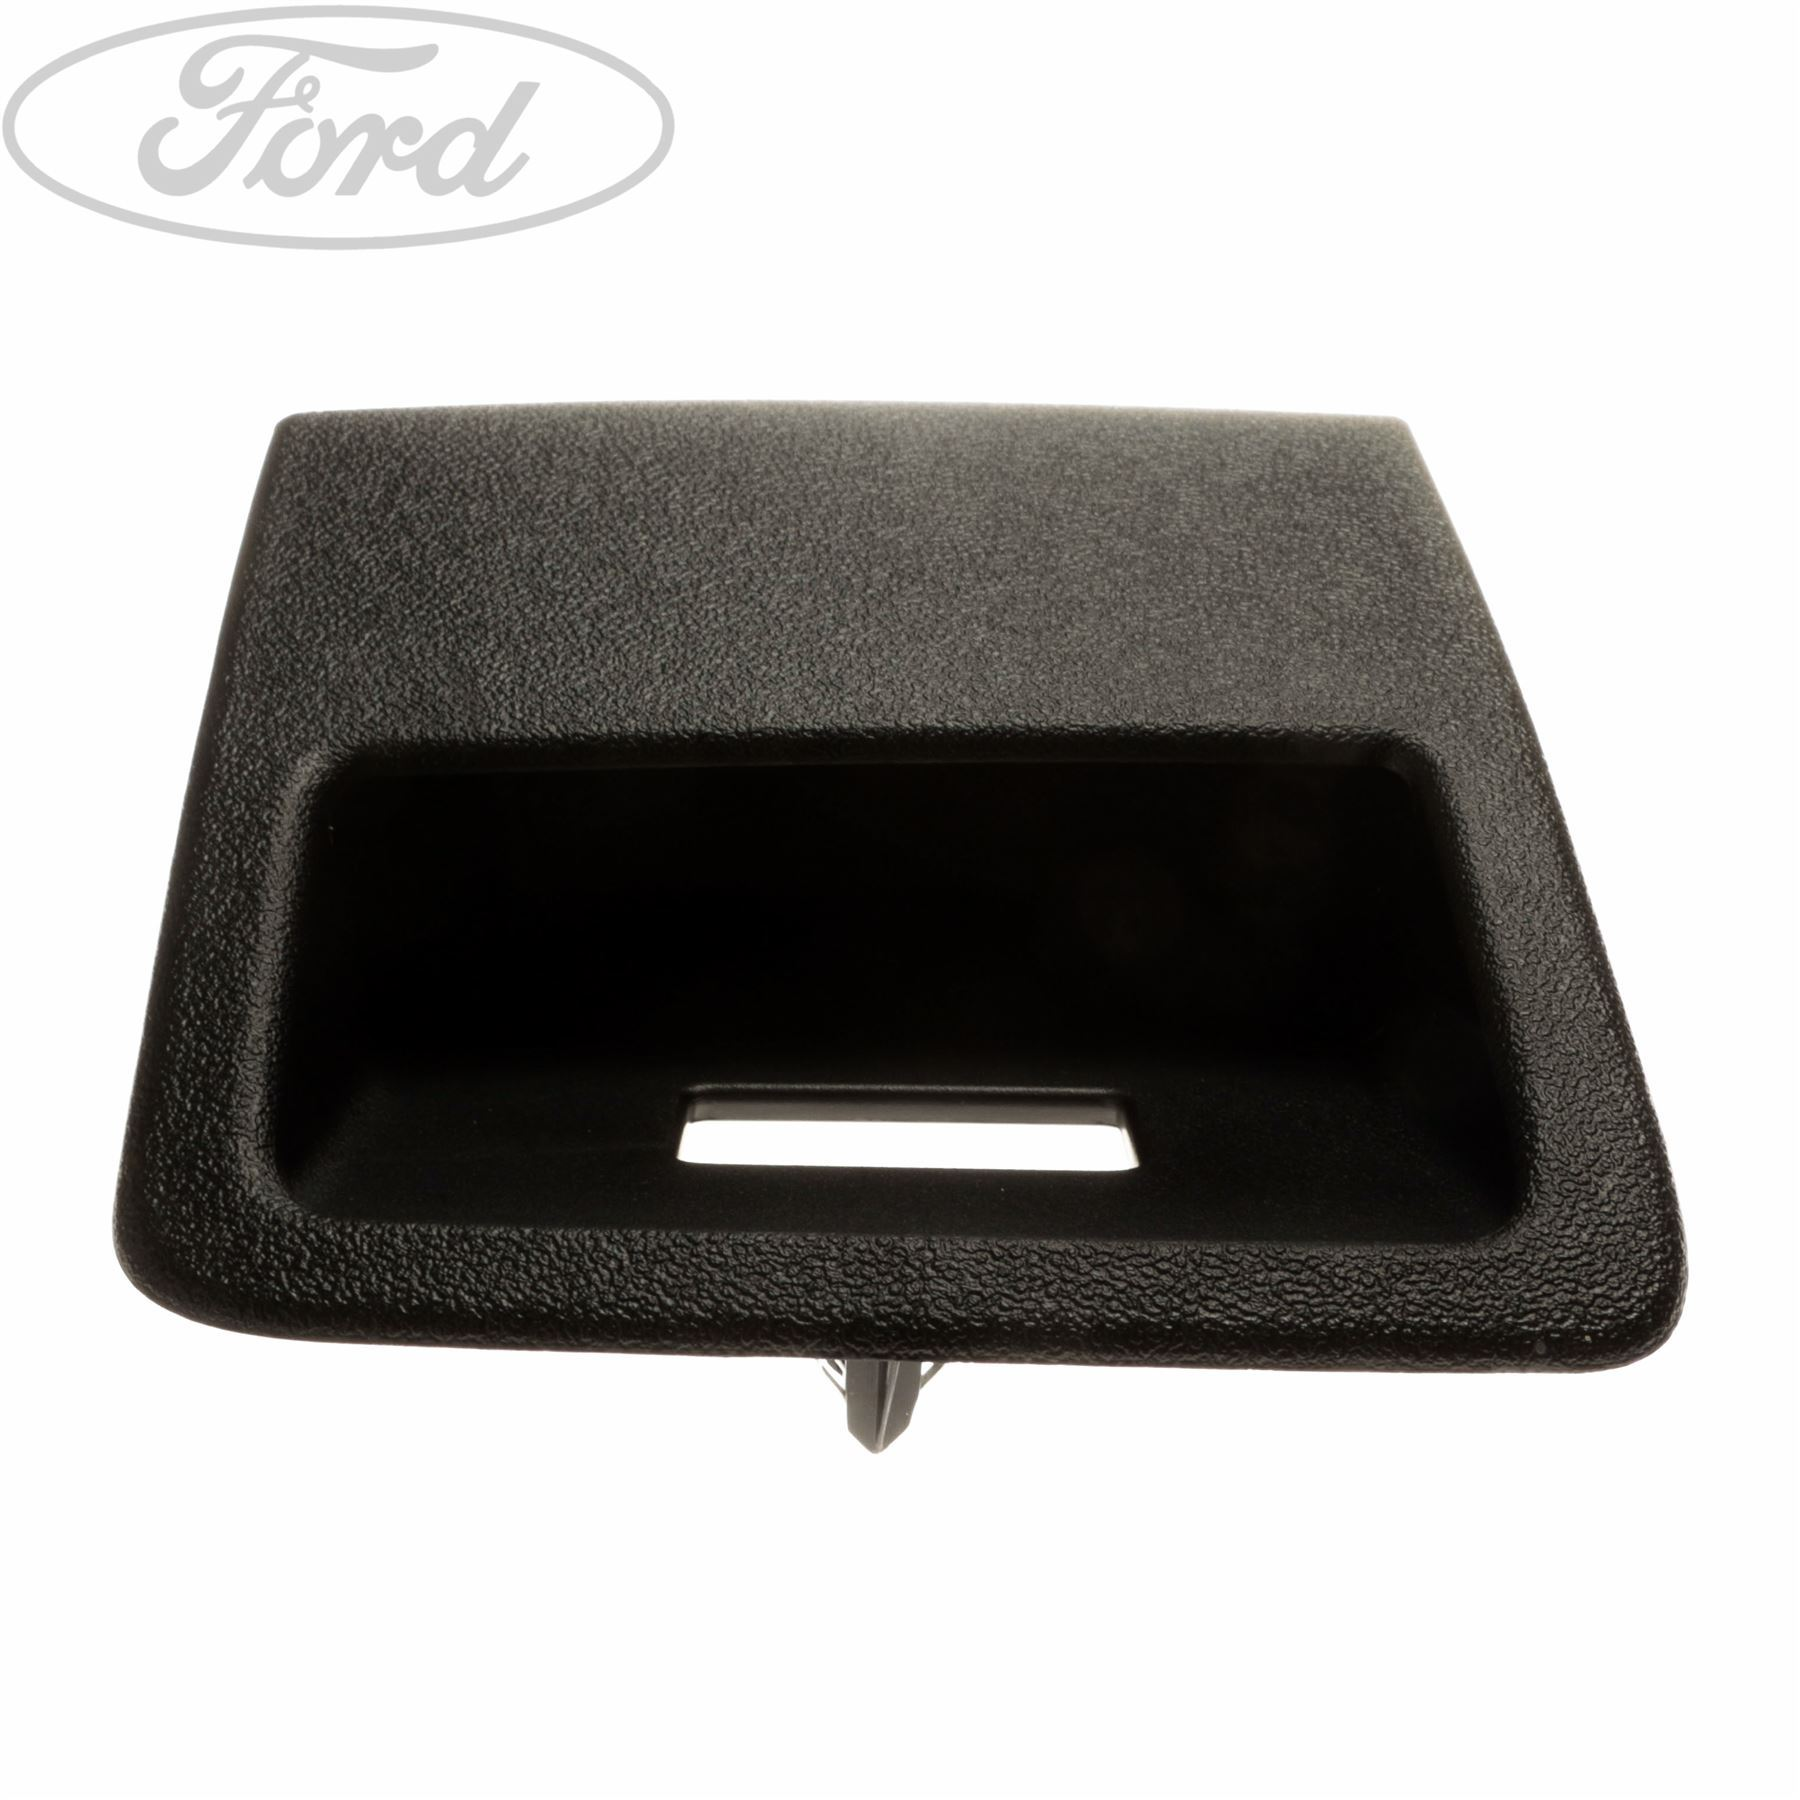 Genuine Ford Ka Mk1 Fuse Box Cover 1376792 1957 Picclick Uk Car 1 Of 4free Shipping